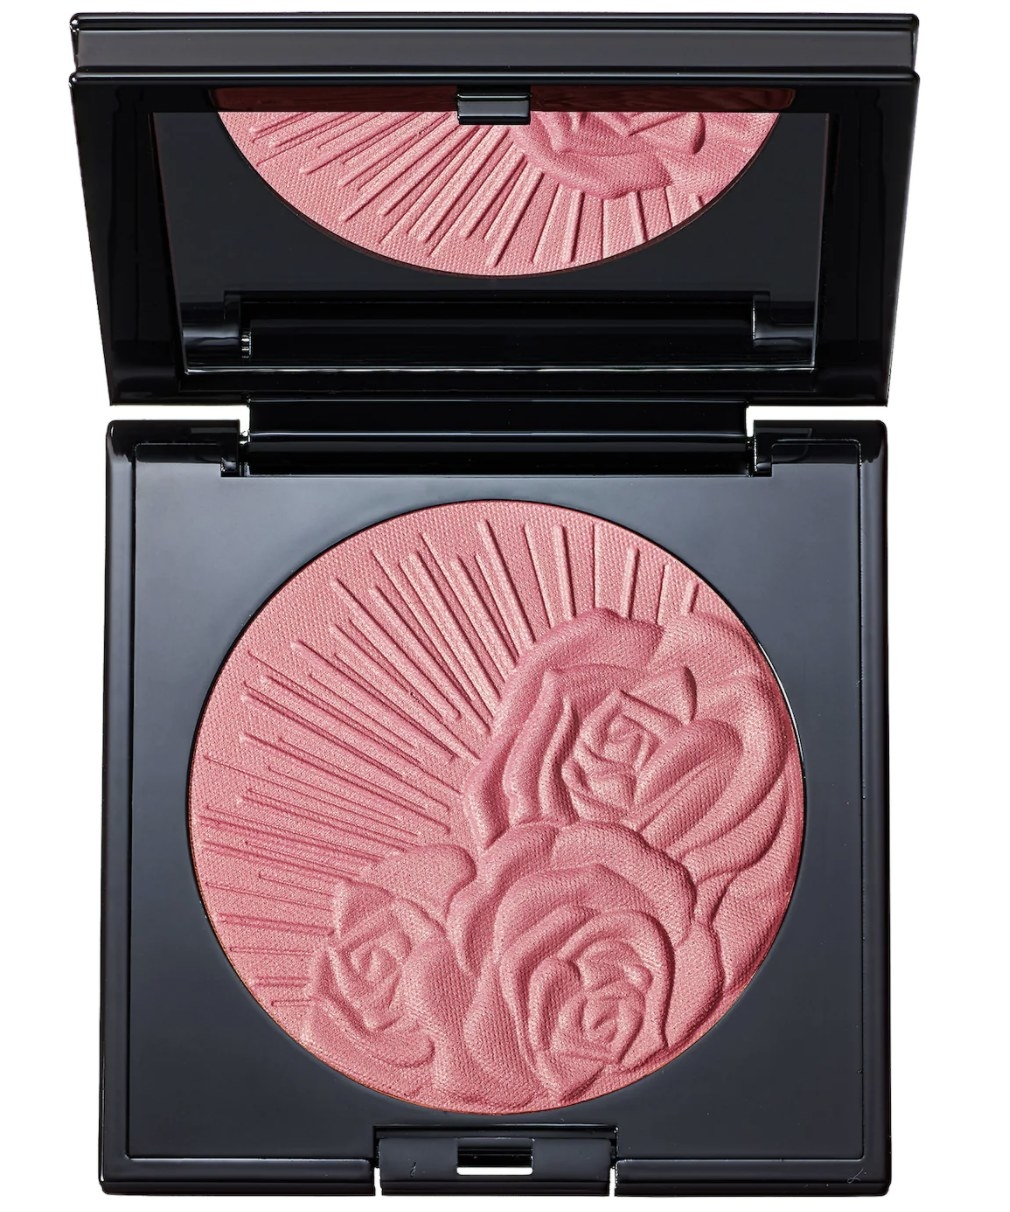 The pressed pink powder has roses and beams and is set in a circular pan in a black square container